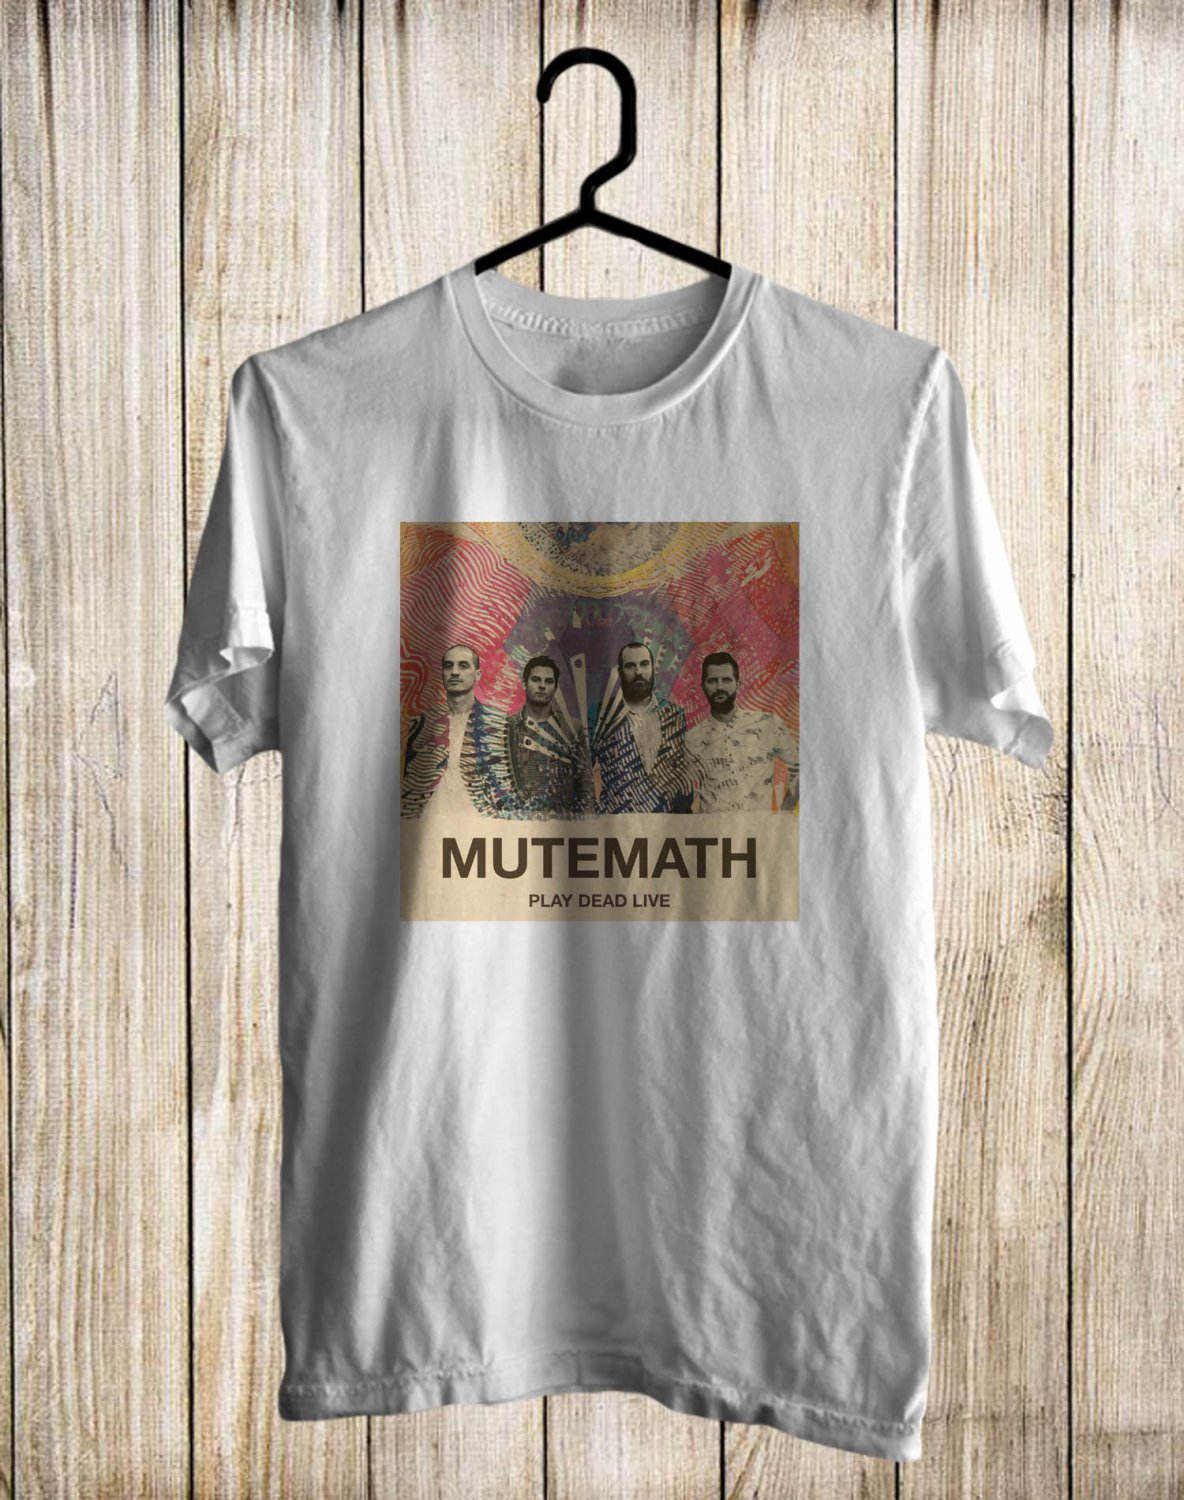 Mutemath Play Dead Alive Tour 2017  White Tee's Front Side by Complexart